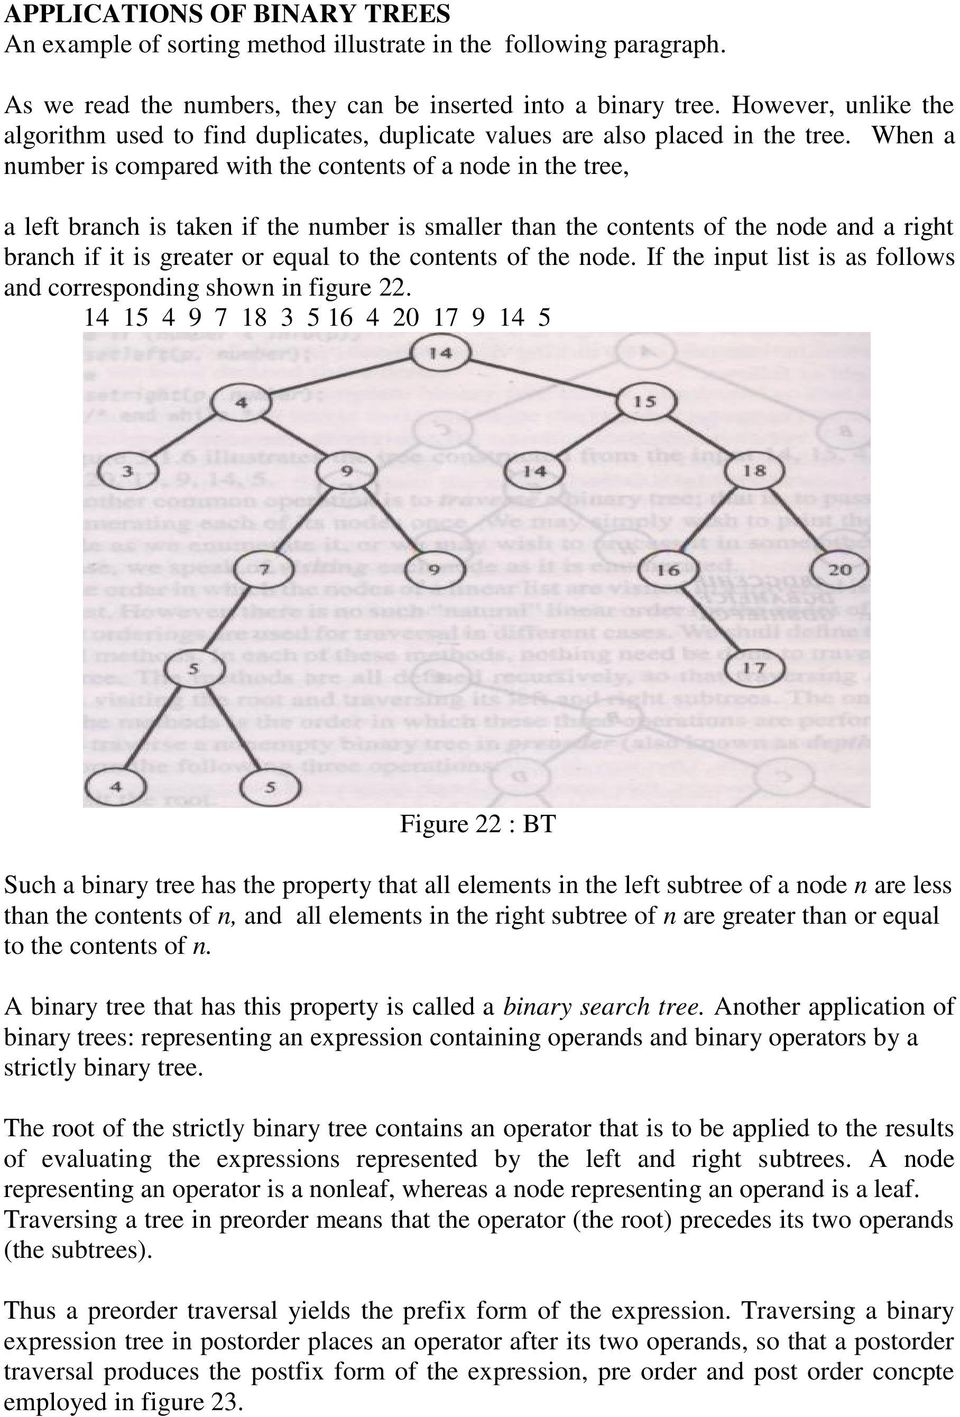 When a number is compared with the contents of a node in the tree, a left branch is taken if the number is smaller than the contents of the node and a right branch if it is greater or equal to the